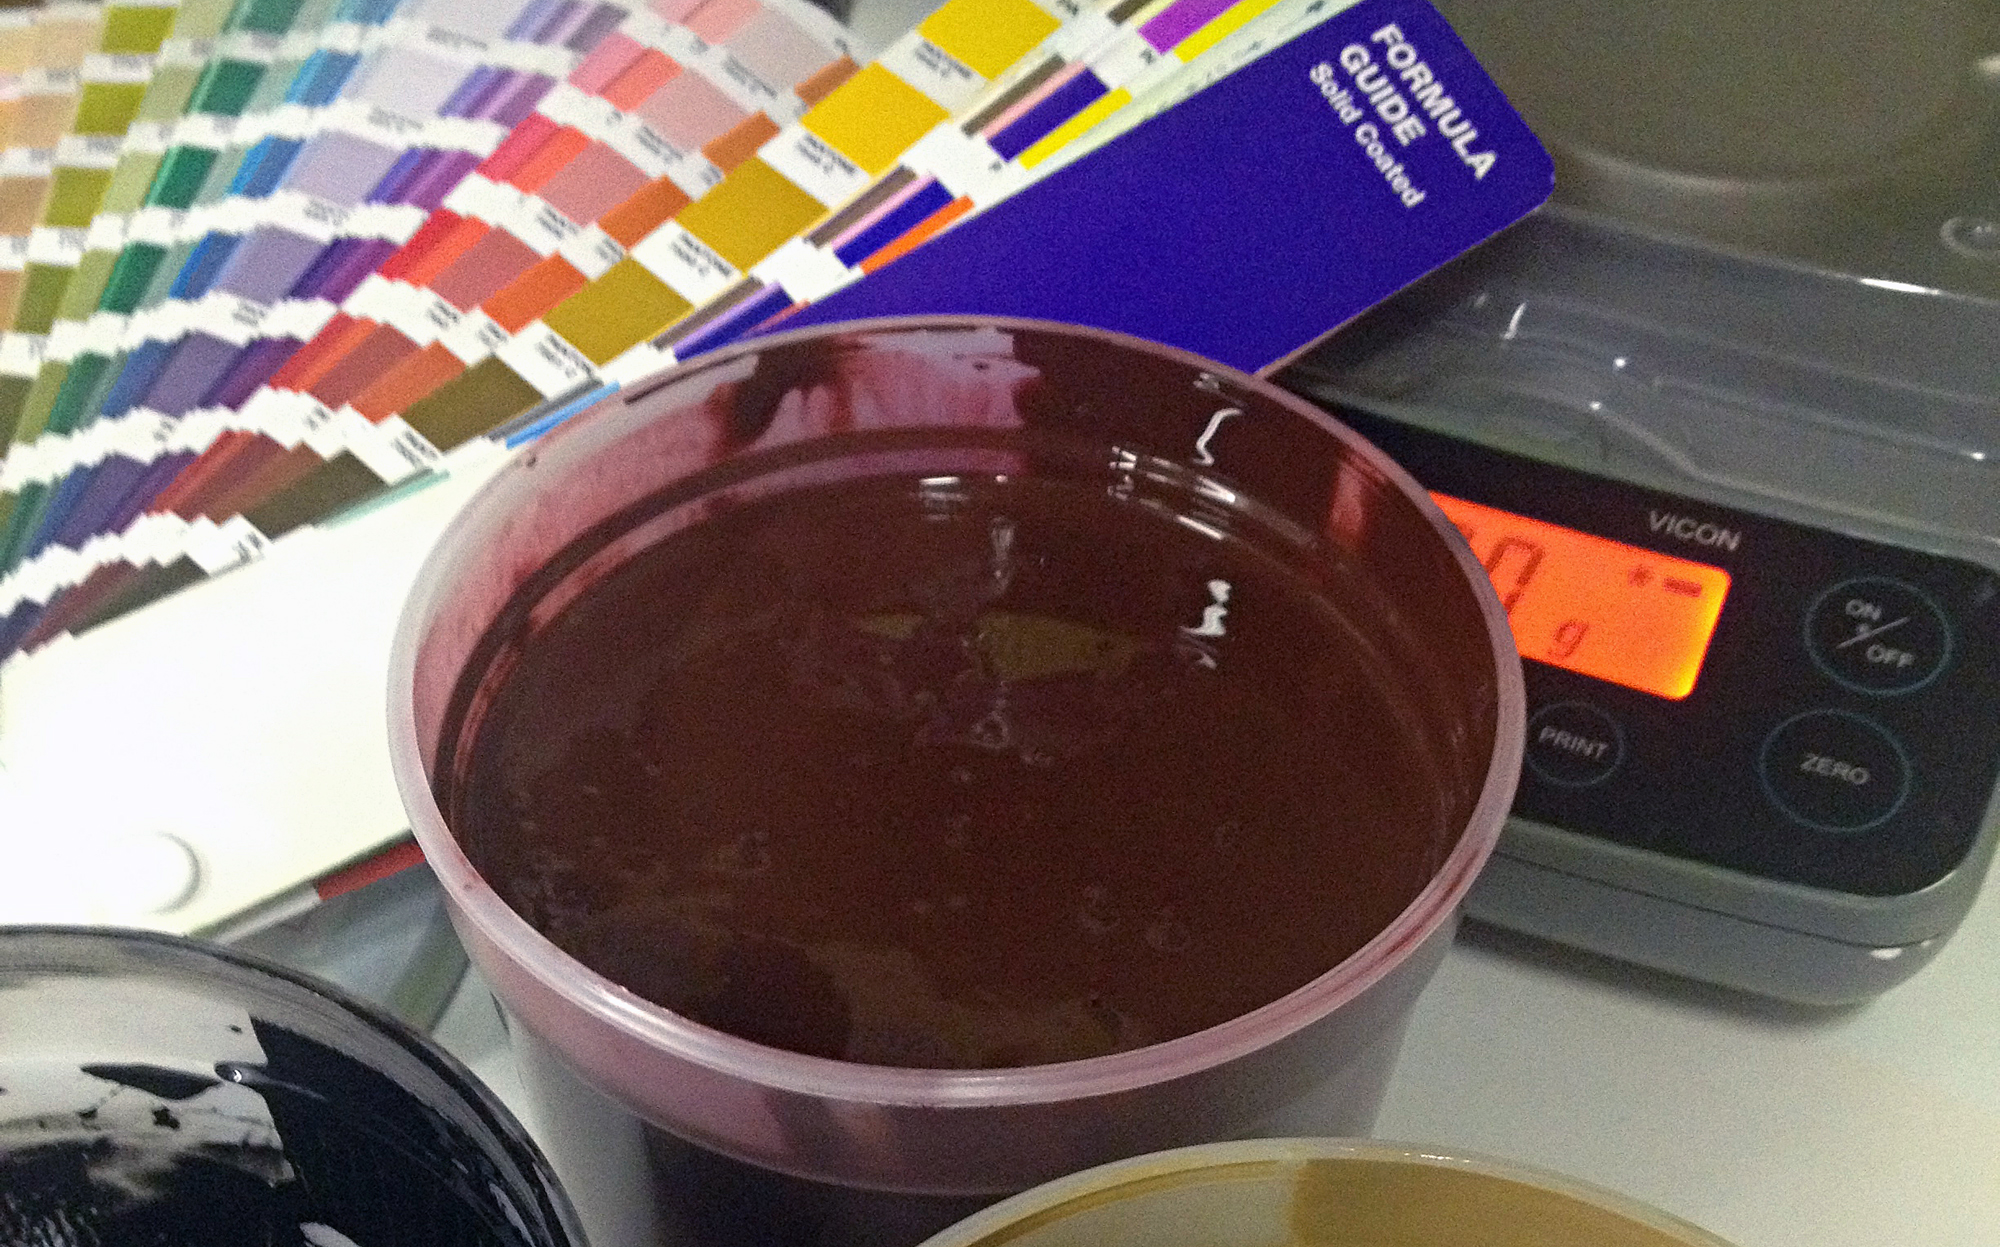 using pantone codes to mix screen printing ink, how to print quality t shirts, how to choose the best t-shirt print color, how to choose the best screen printer, how to design for t shirts, where to buy pantone book, pantone color guide, how to make vintage t shirts